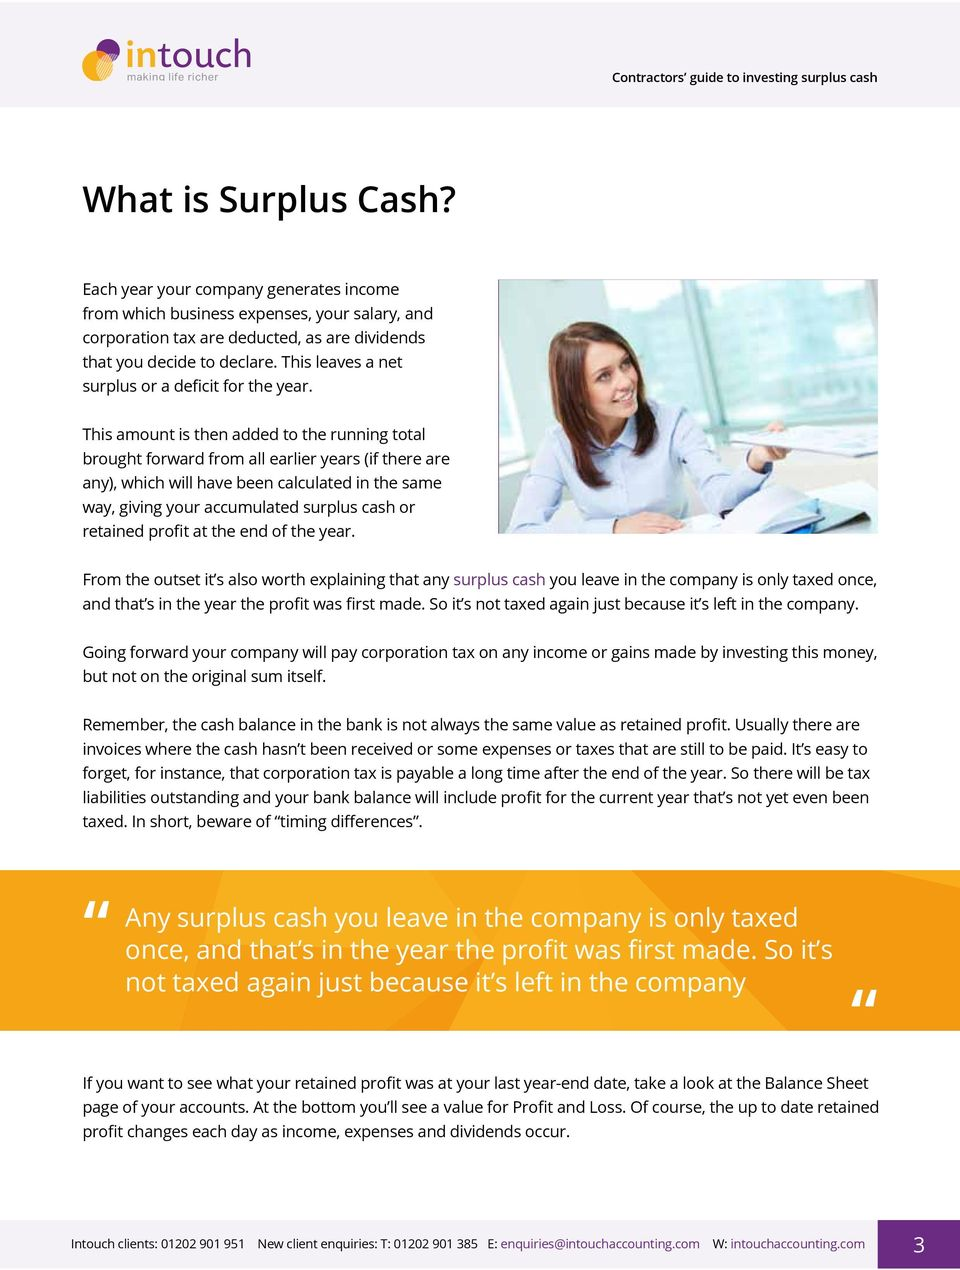 This amount is then added to the running total brought forward from all earlier years (if there are any), which will have been calculated in the same way, giving your accumulated surplus cash or